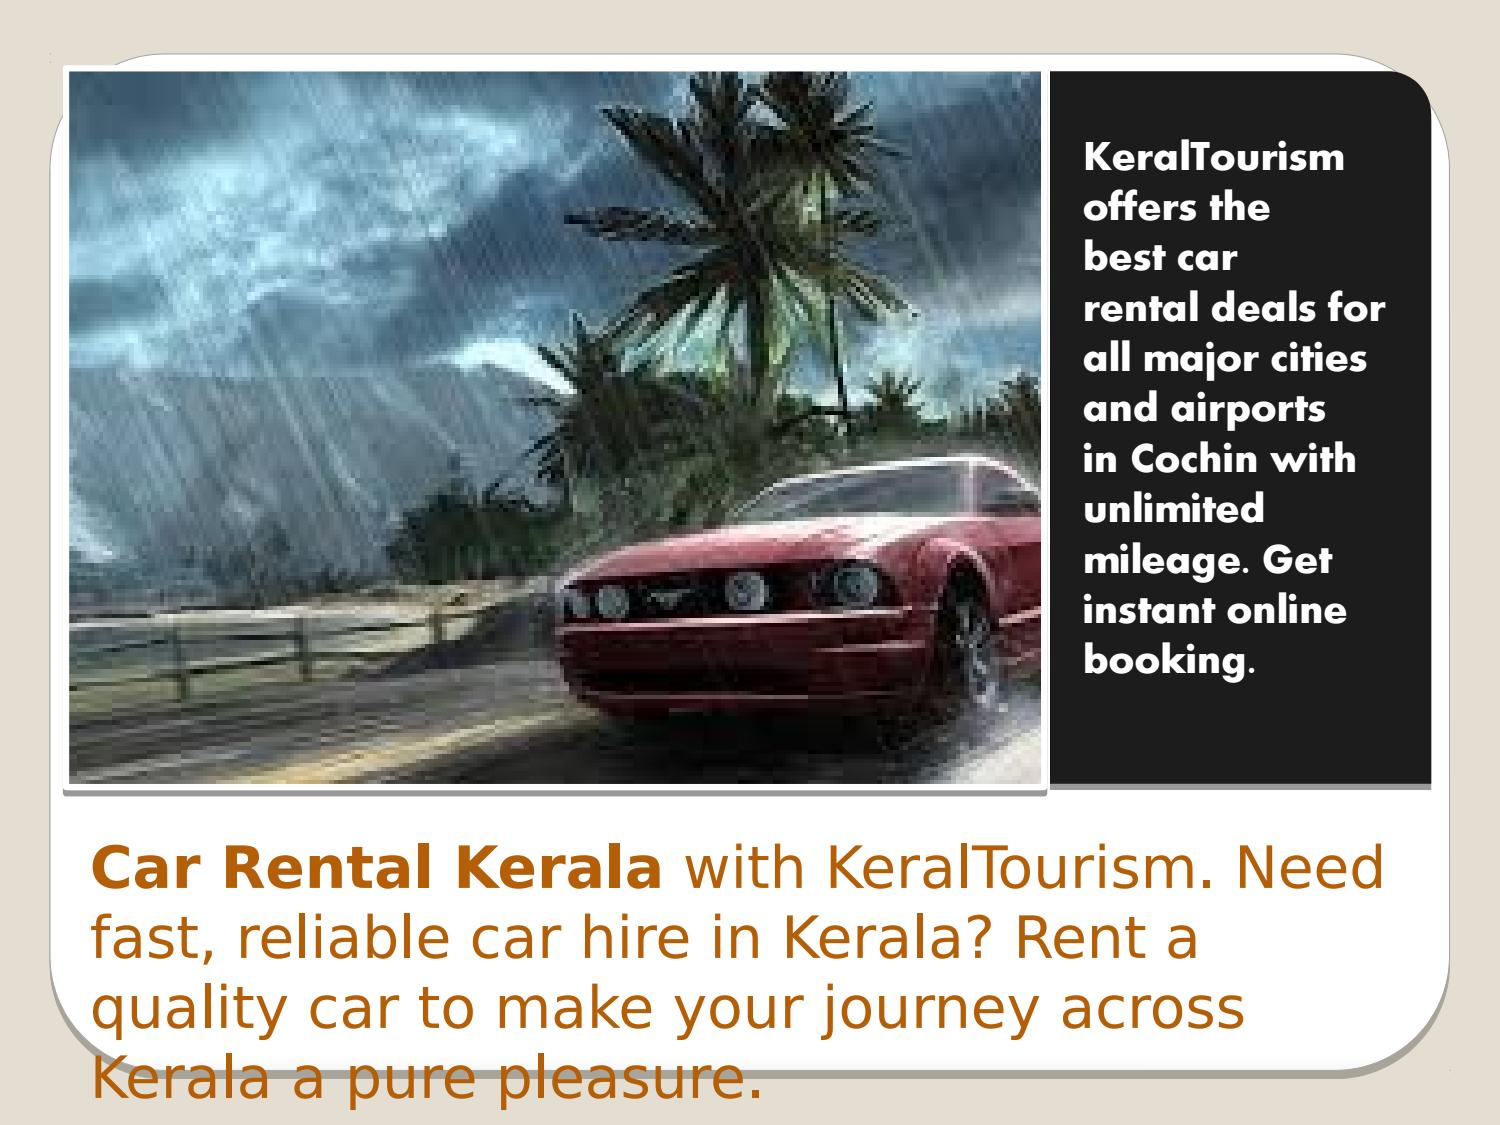 Car Rental Quotes Book A Economy Car Rental From National Car Rental In Kerala.